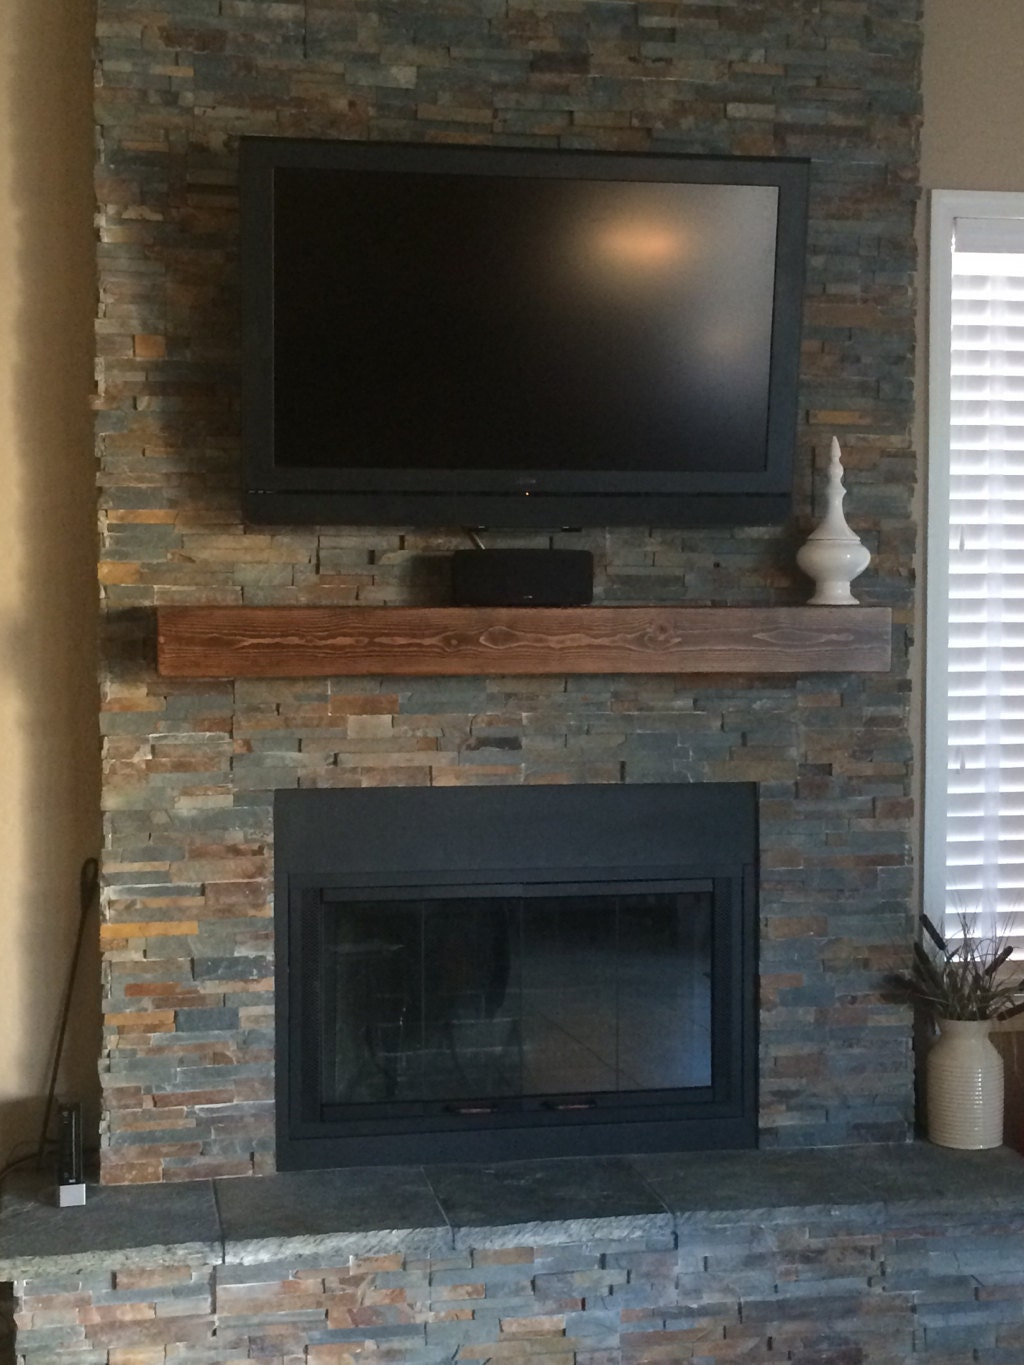 Fireplace Mantel 48 Long X 5 5 Tall X 5 5